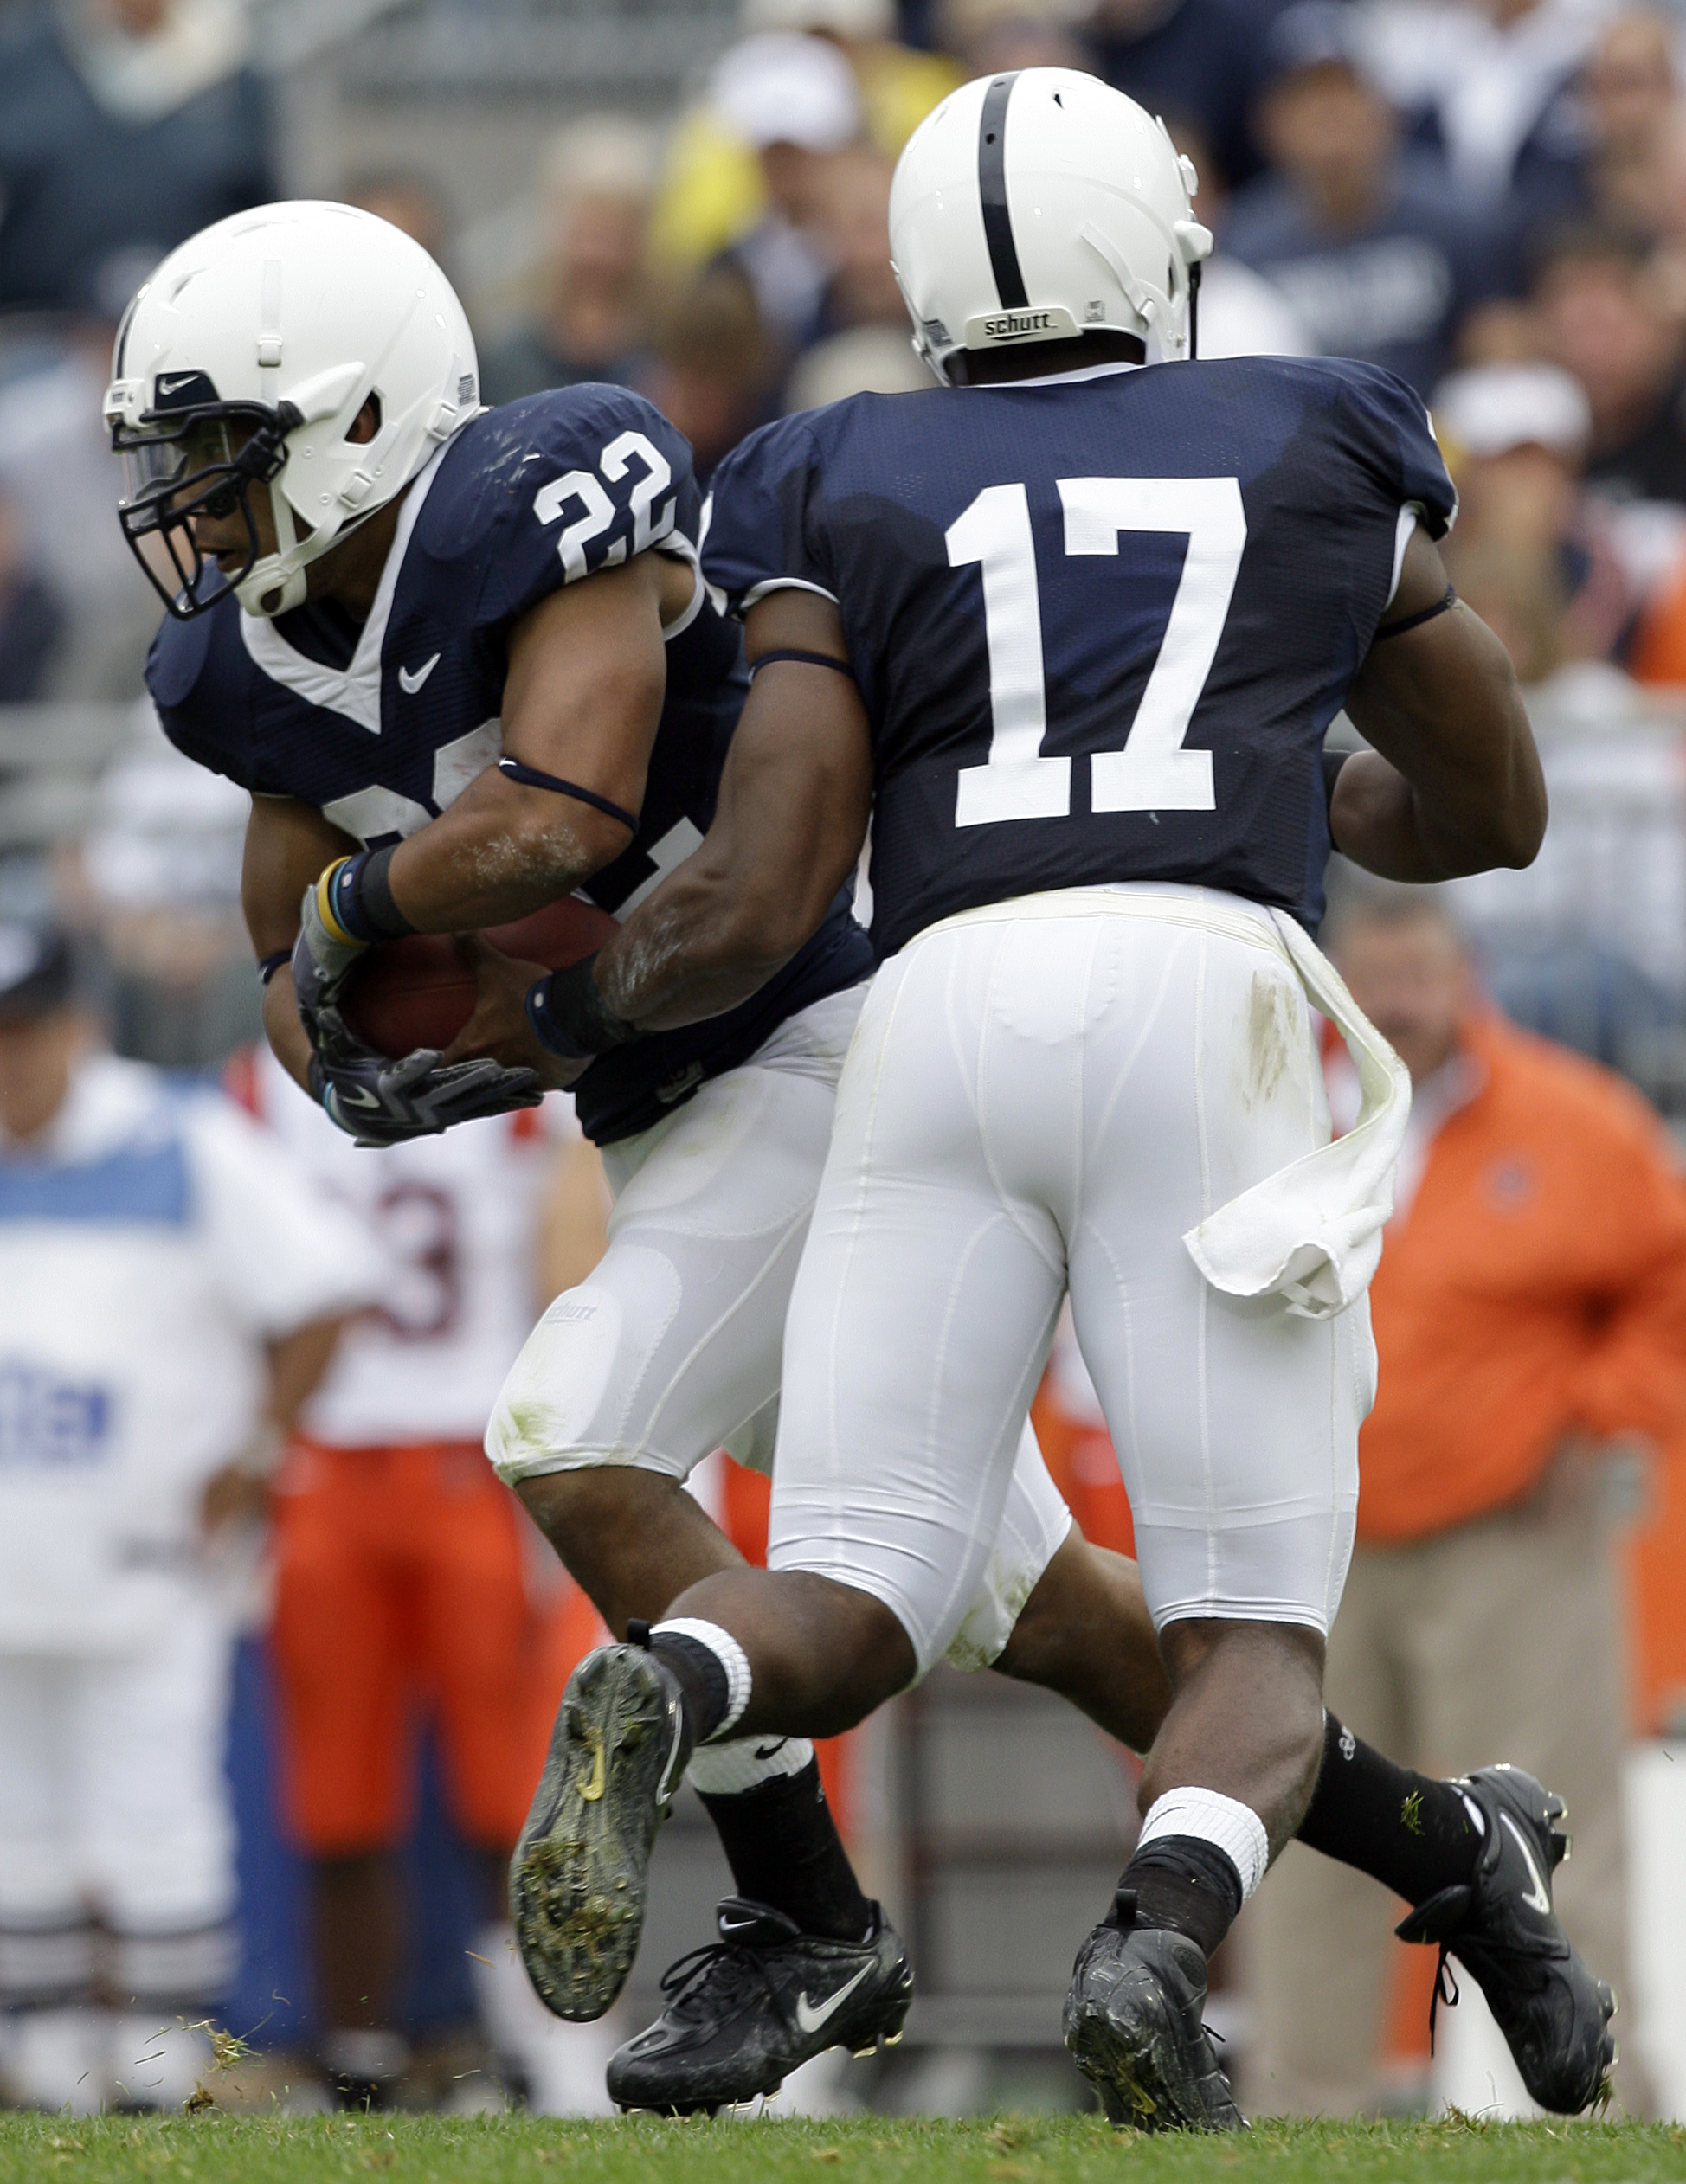 In this Saturday, Sept. 12, 2009, photo, Penn State quarterback Daryll Clark hands off to running back Evan Royster in the first half of their college football game against Syracuse in State College, Pa. Penn State won 28-7.  (AP Photo/Carolyn Kaster)